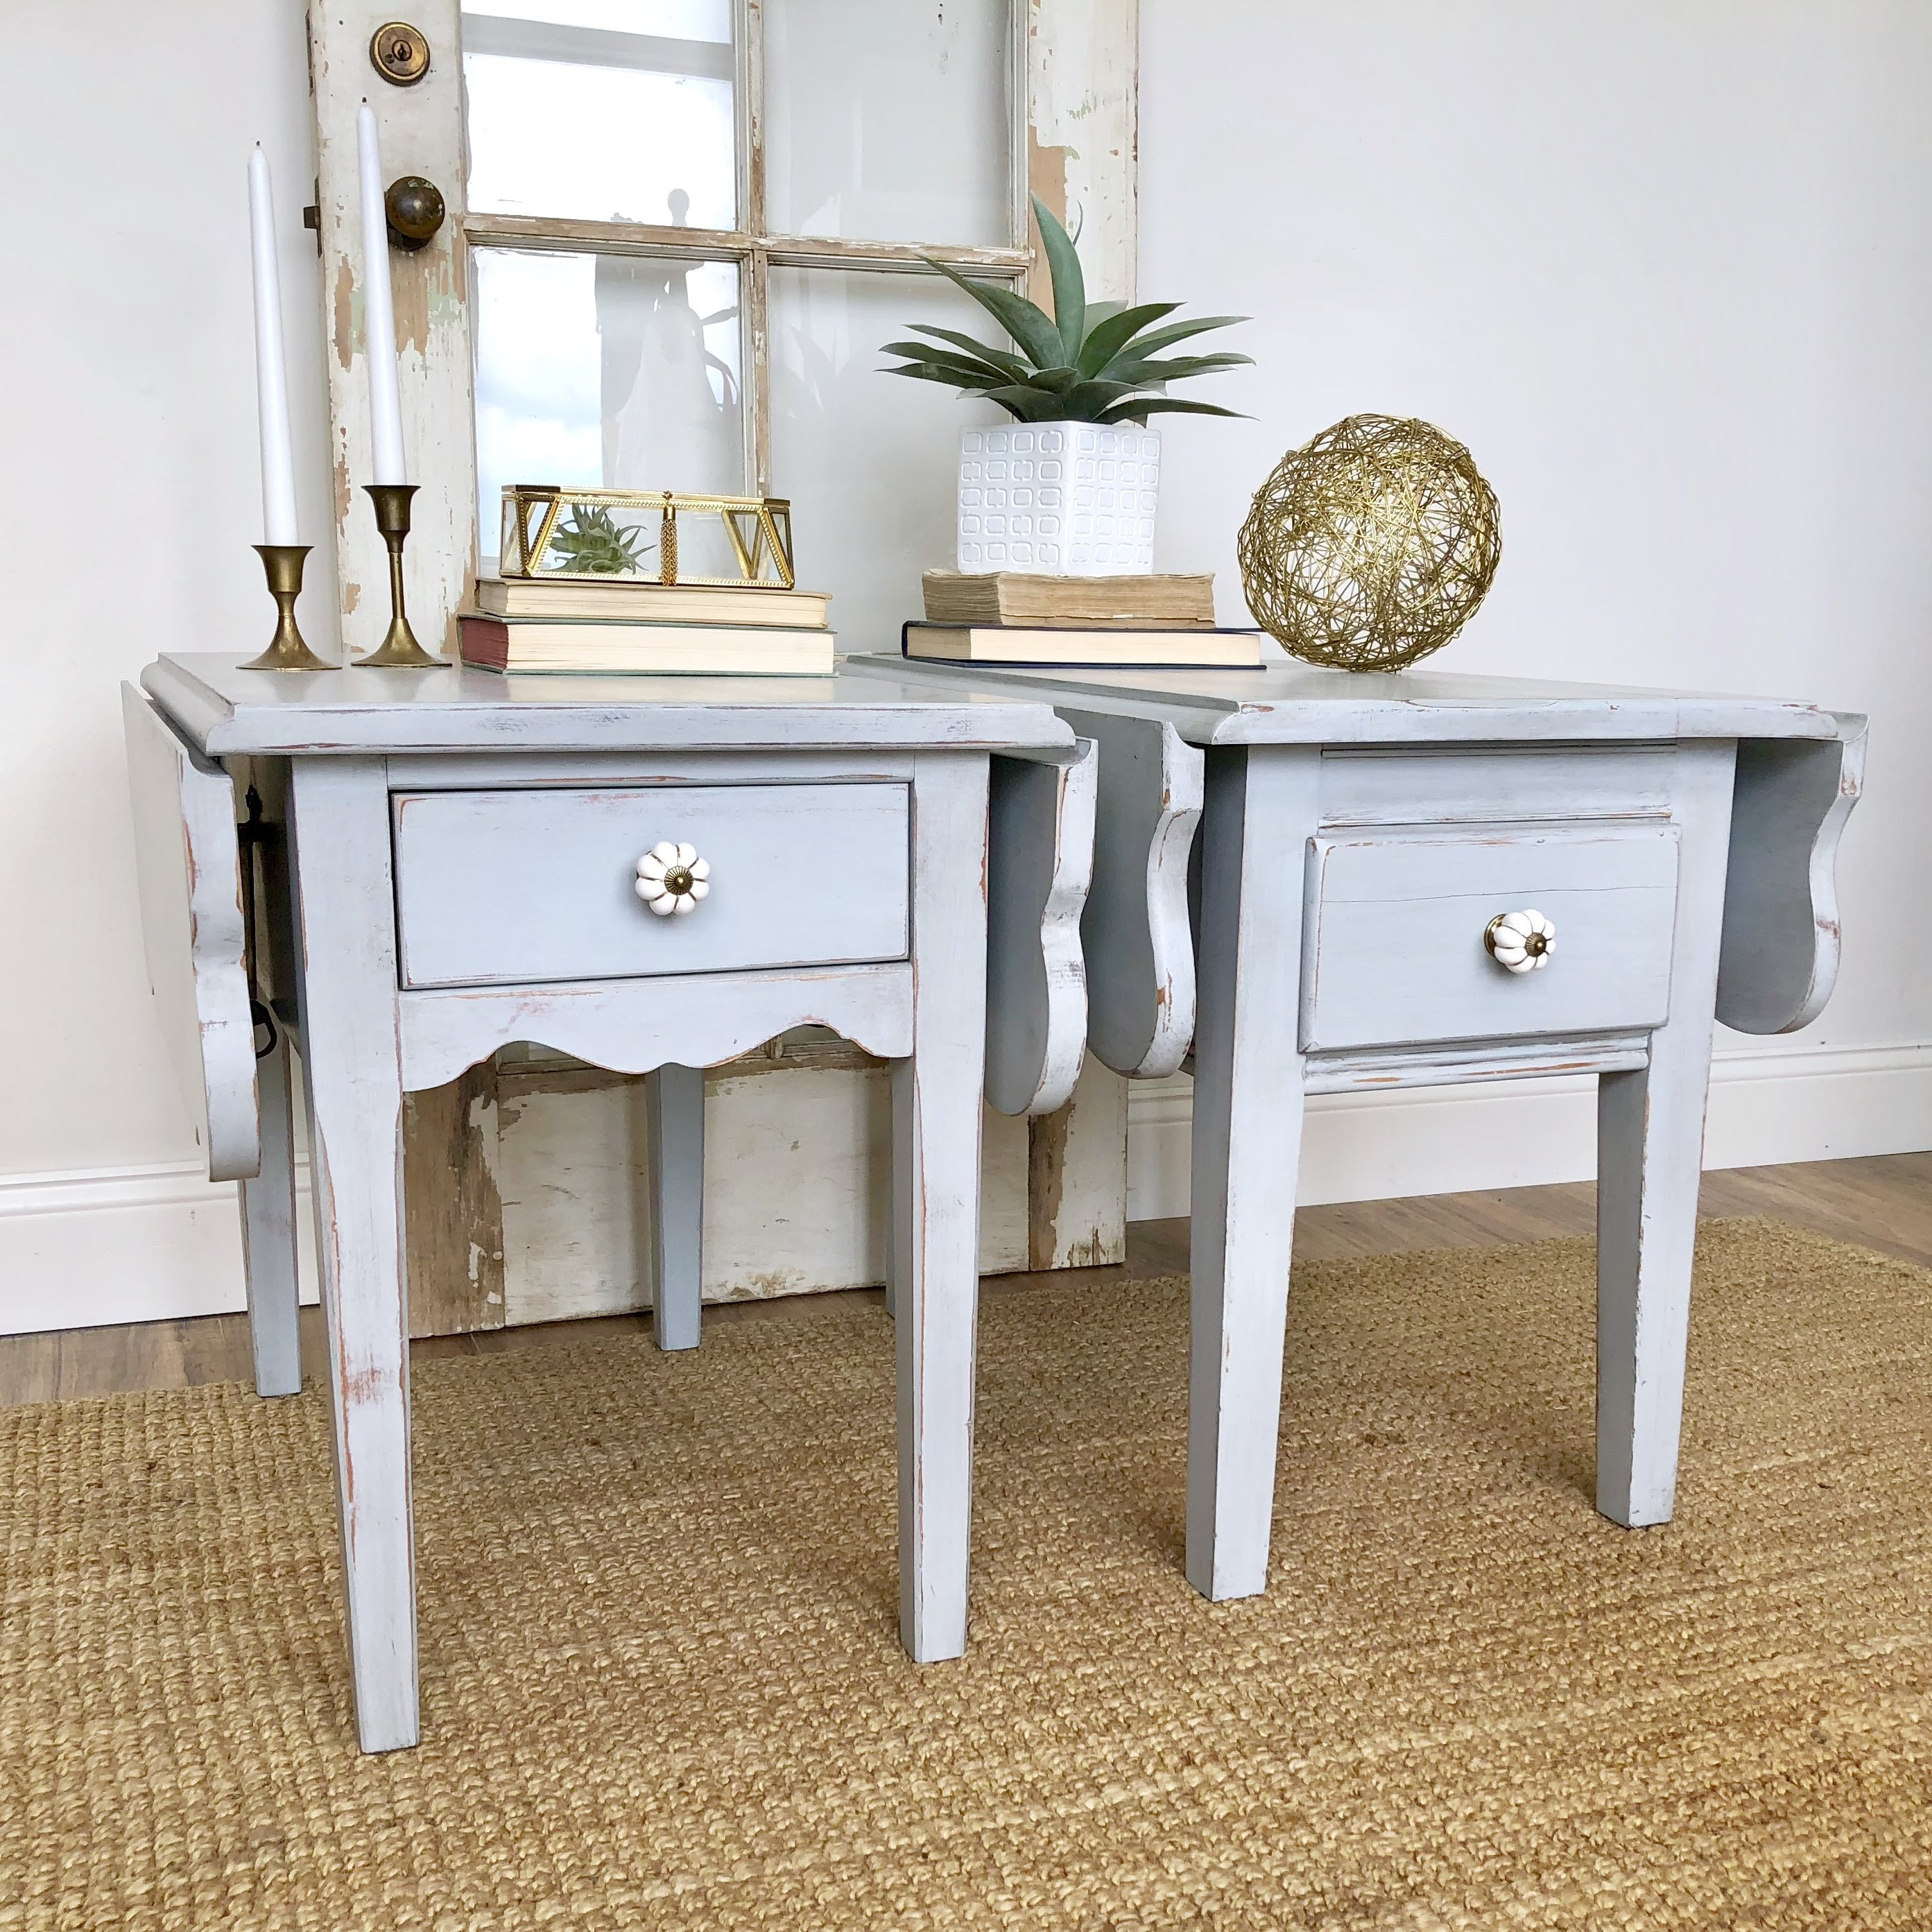 Pair Of Blue Gray Distressed End Tables   Small Living Room Tables   Pair  Of Nightstands   Narrow Drop Leaf Side   Tables Cottage Furniture